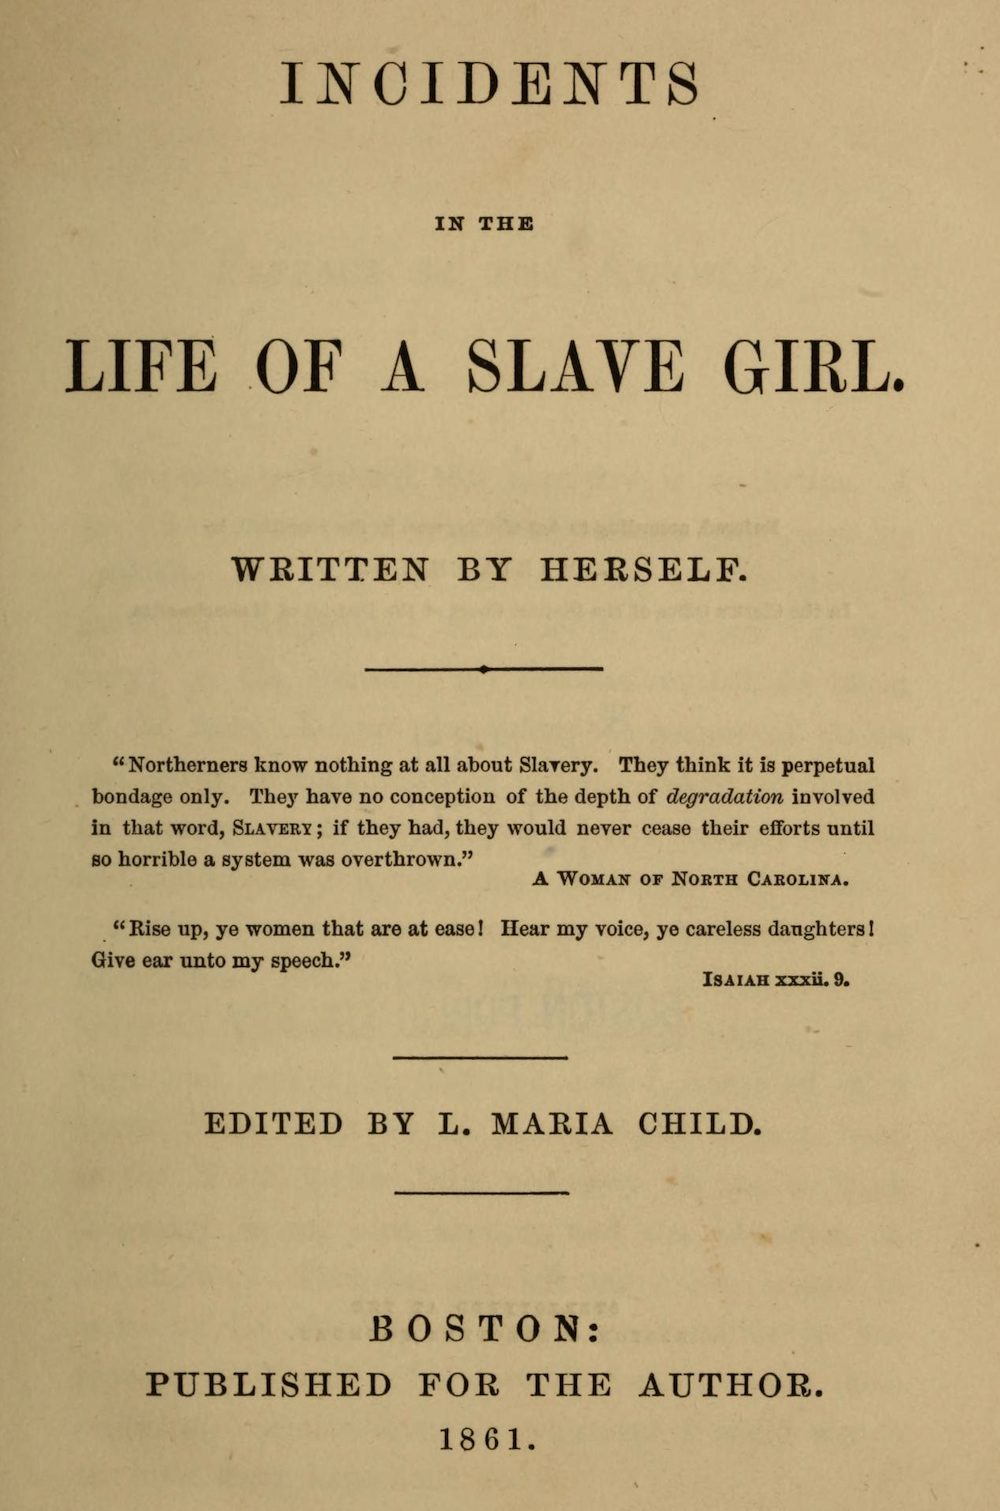 From the  Incidents in the Life of a Slave Girl  original publication